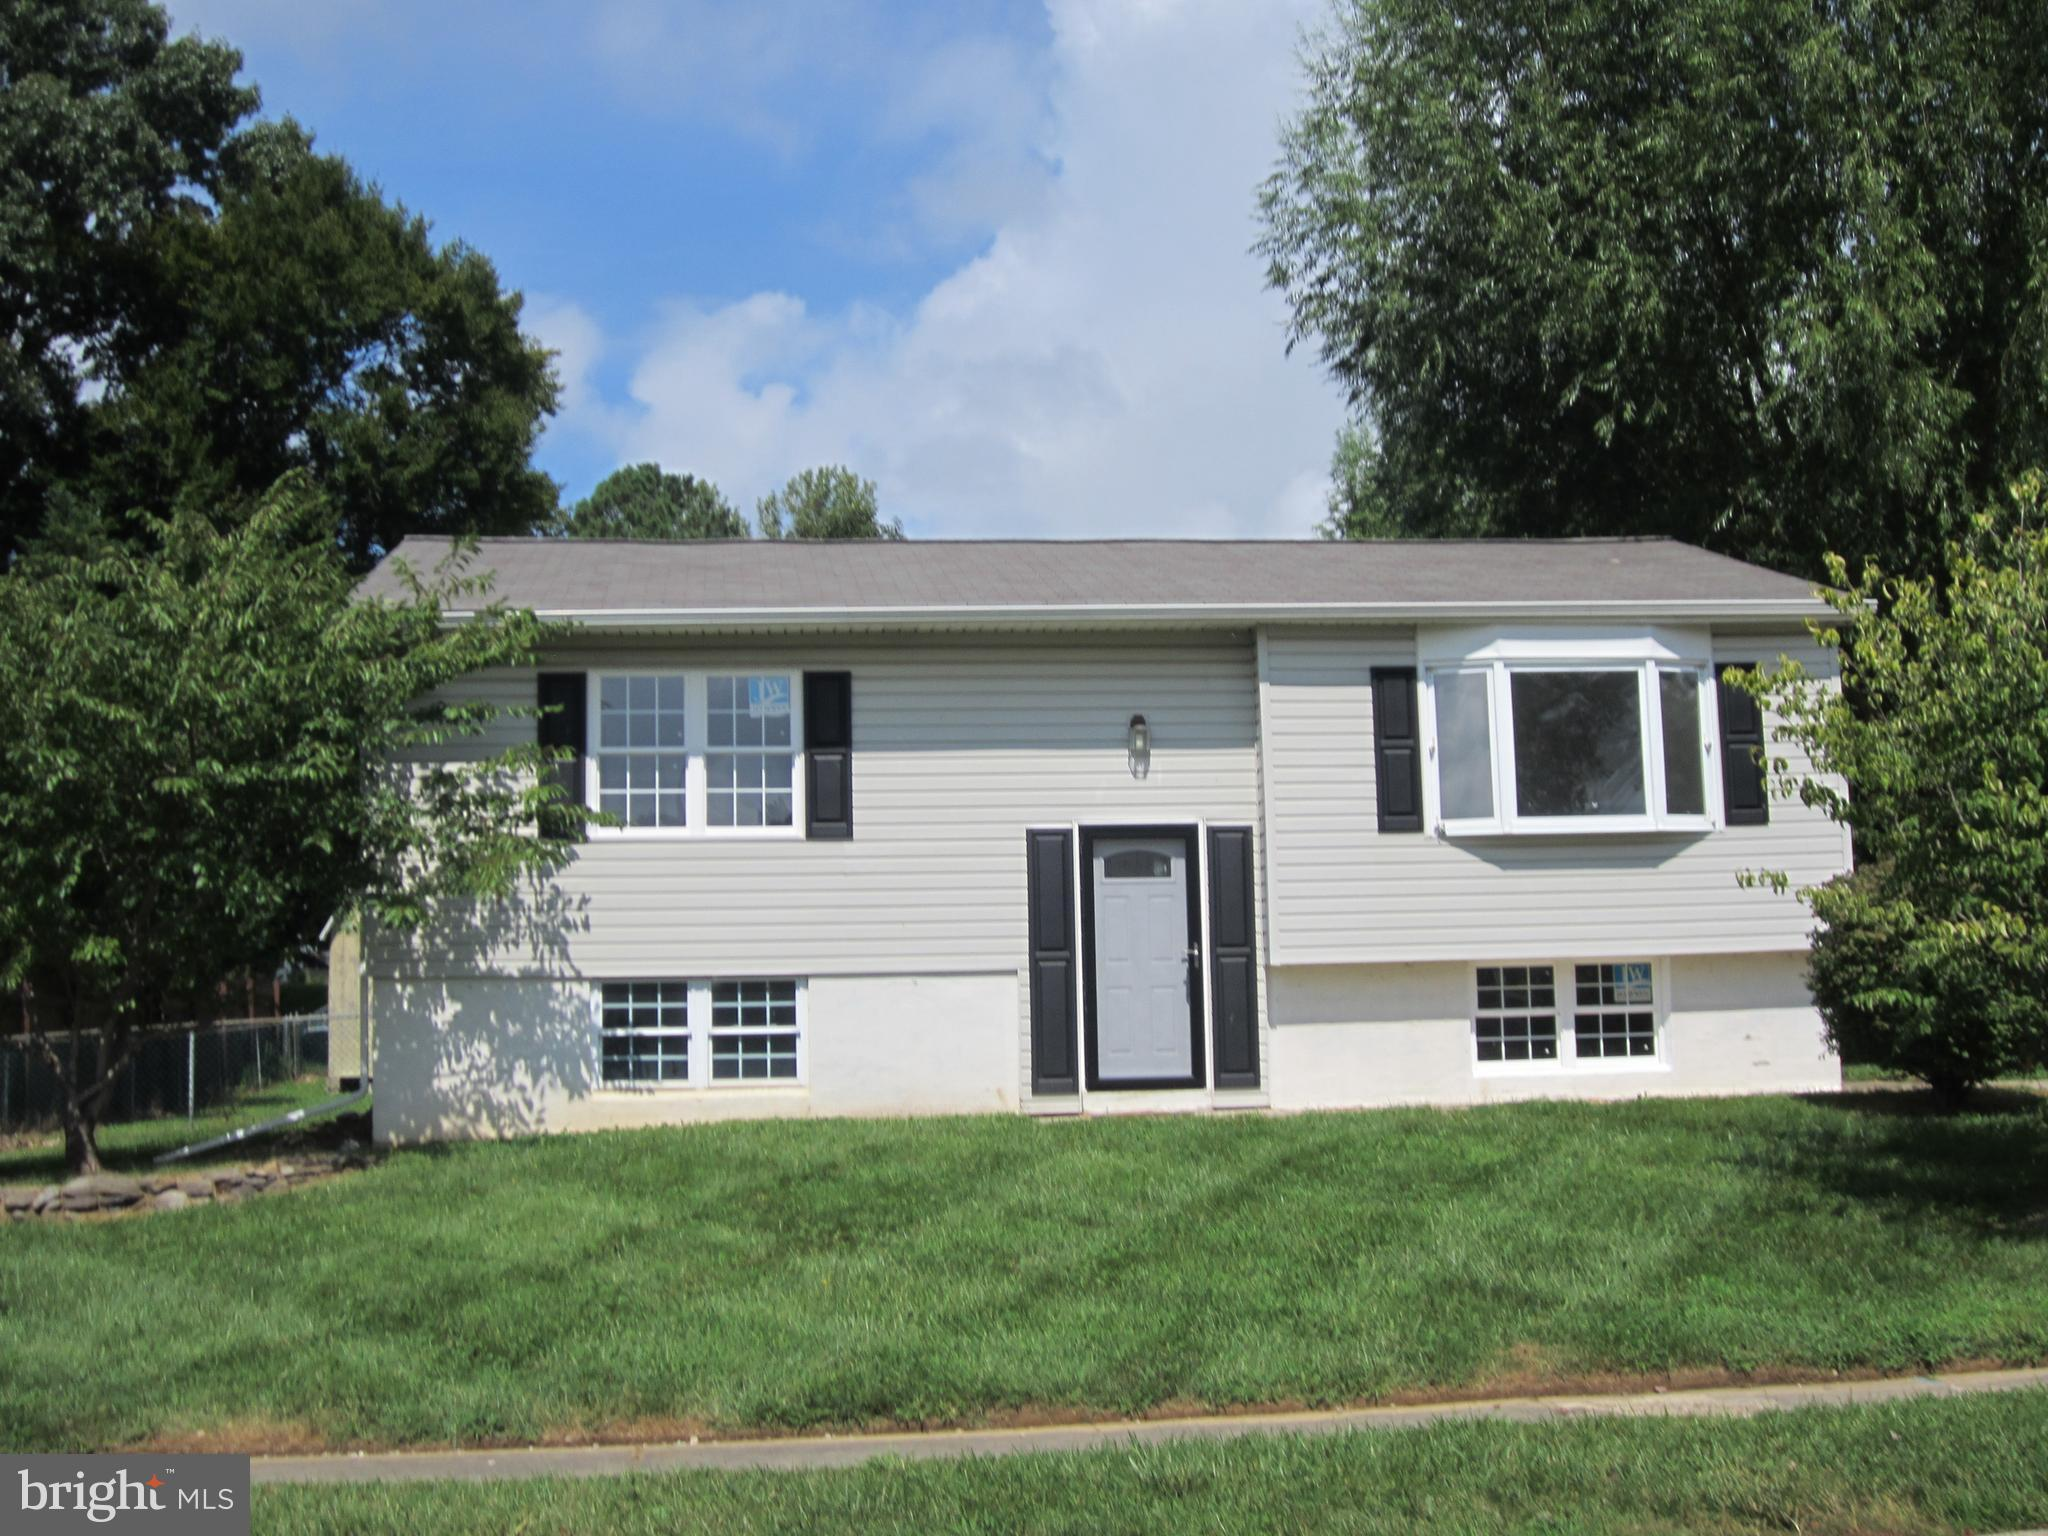 Buckhill Farms. Convenient to schools, shopping, restaurants and Delaware. Home has 3 bedrooms, plus